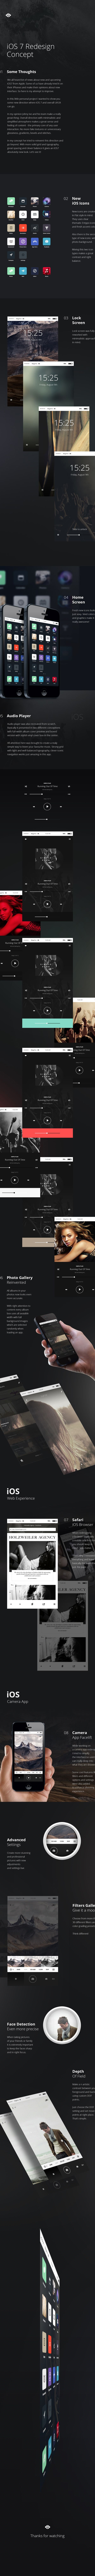 iOS 7 Redesign Concept by Alexey Masalov, via Behance